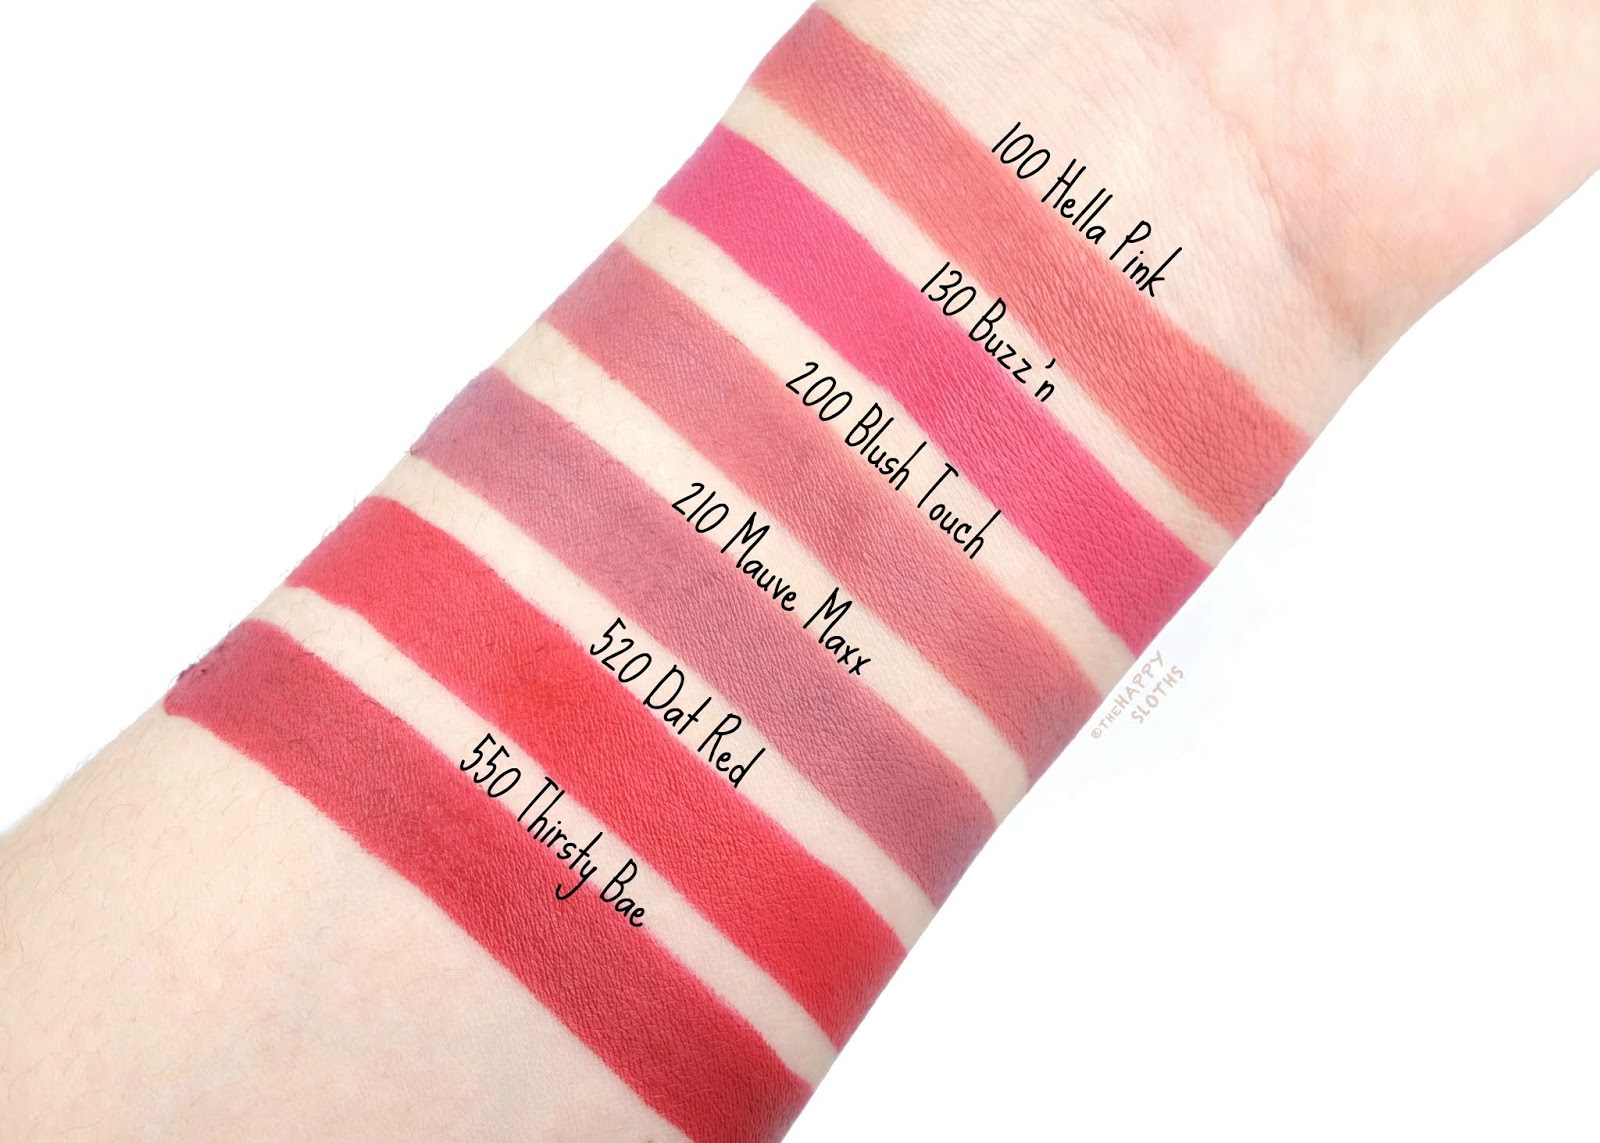 Rimmel London | Lasting Finish Extreme Lipstick: Review and Swatches